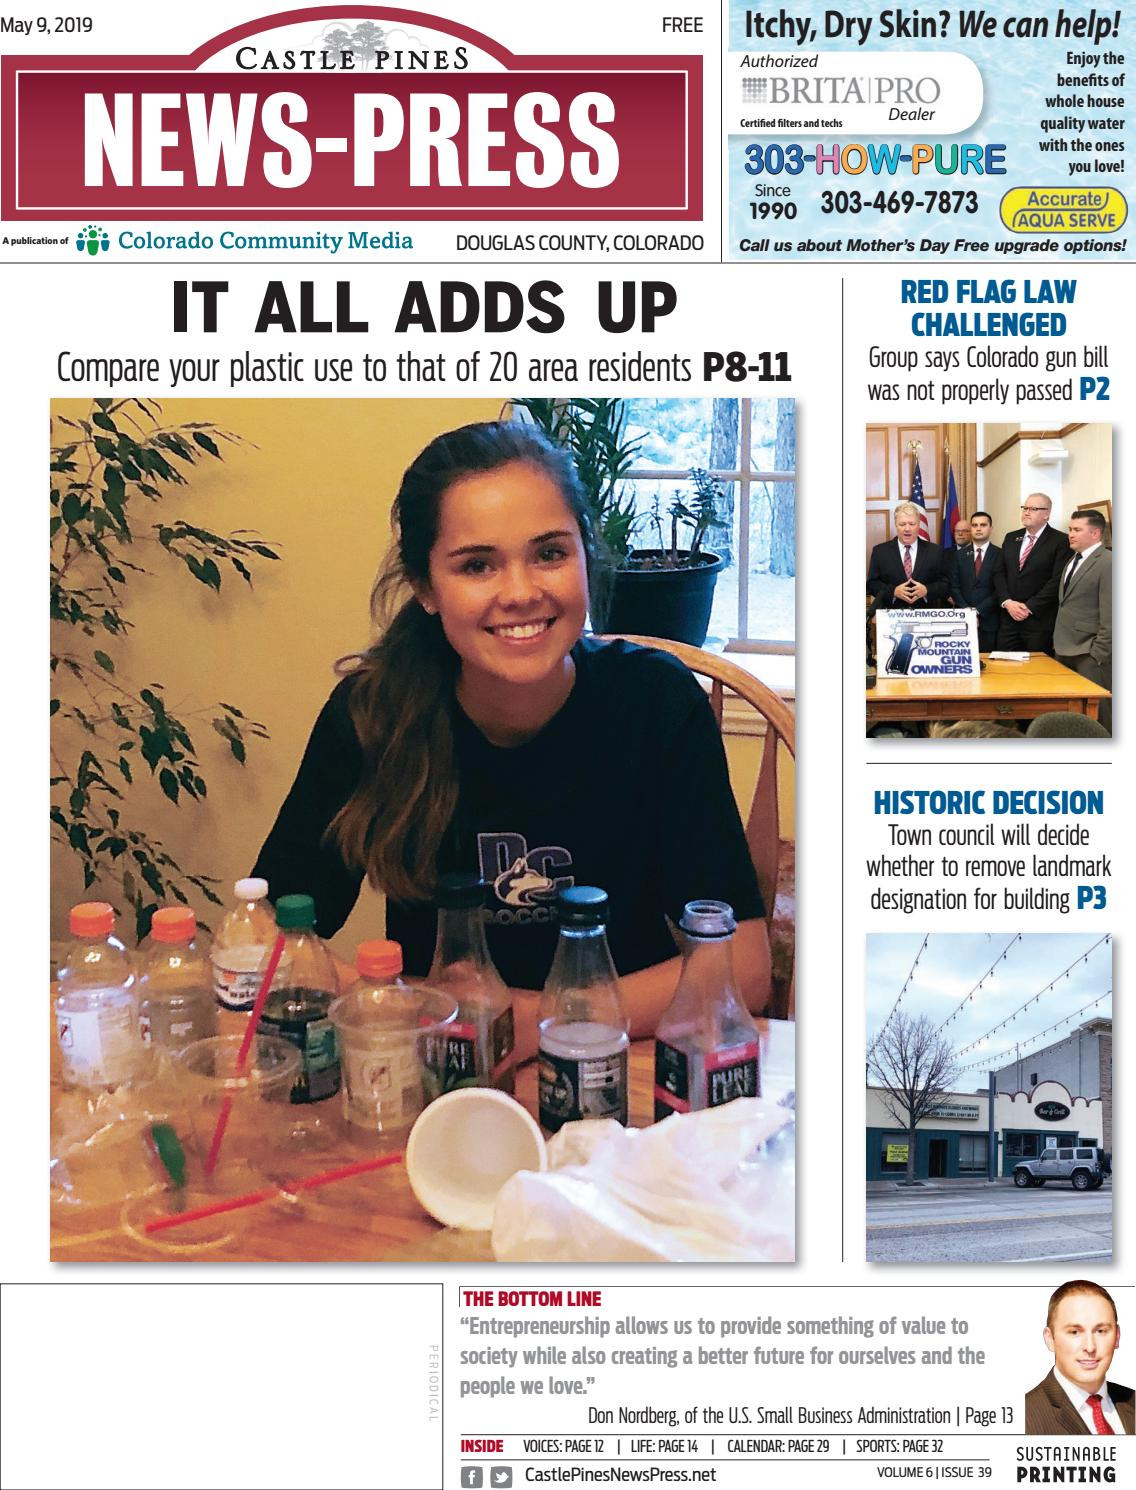 Castle Pines News Press 0509 by Colorado Community Media - issuu